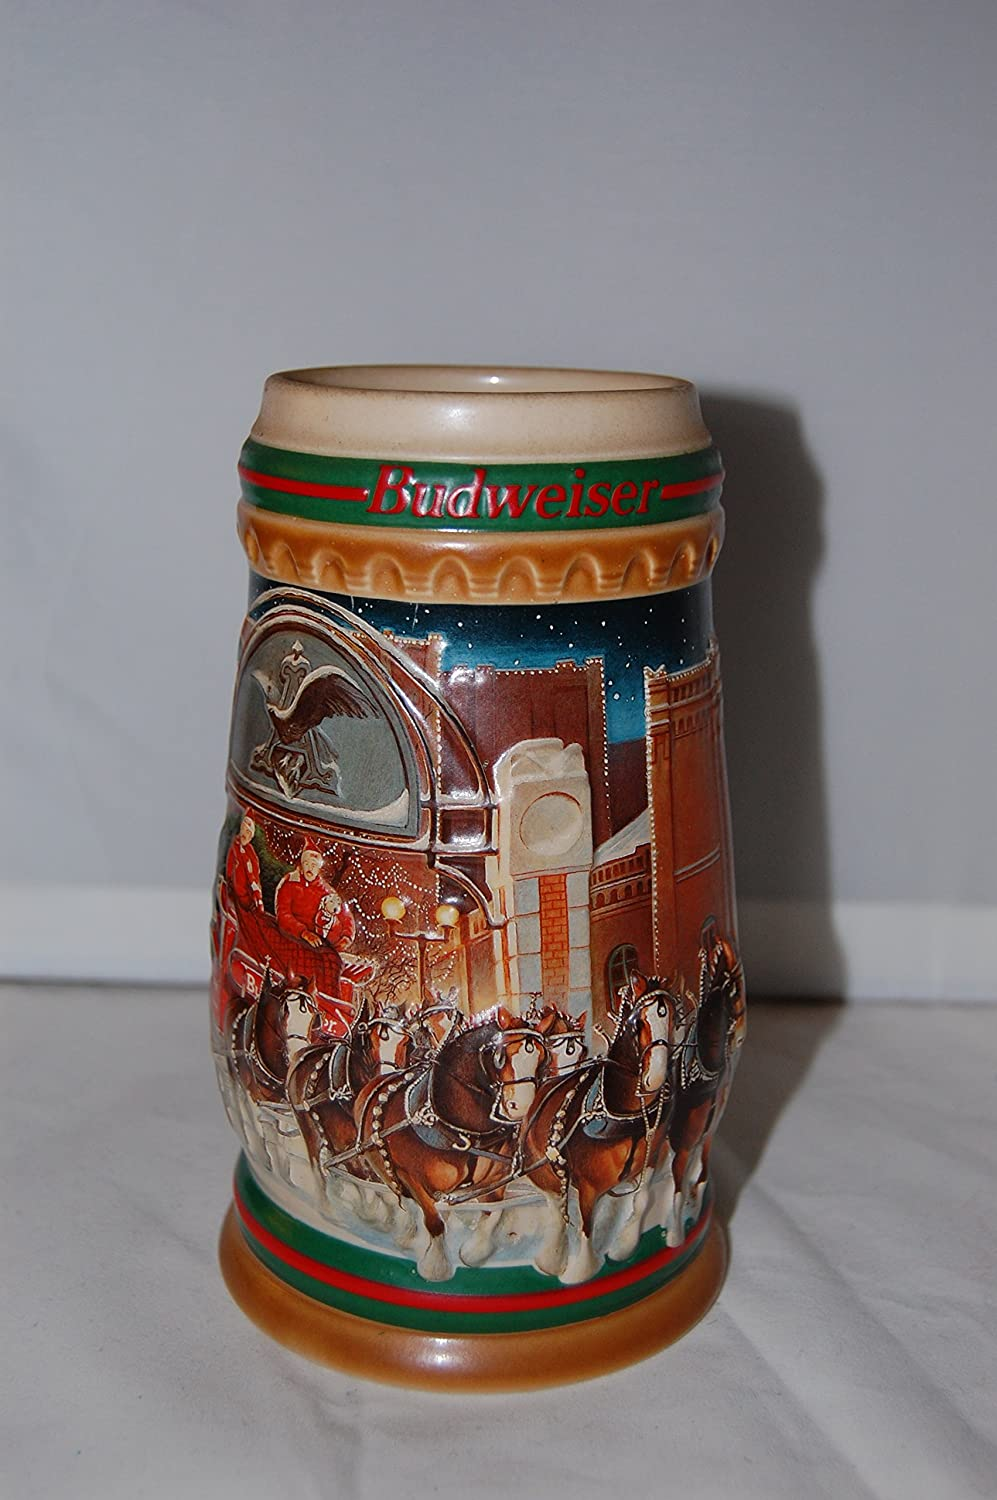 1997 Budweiser Holiday Stein Home for the Holidays